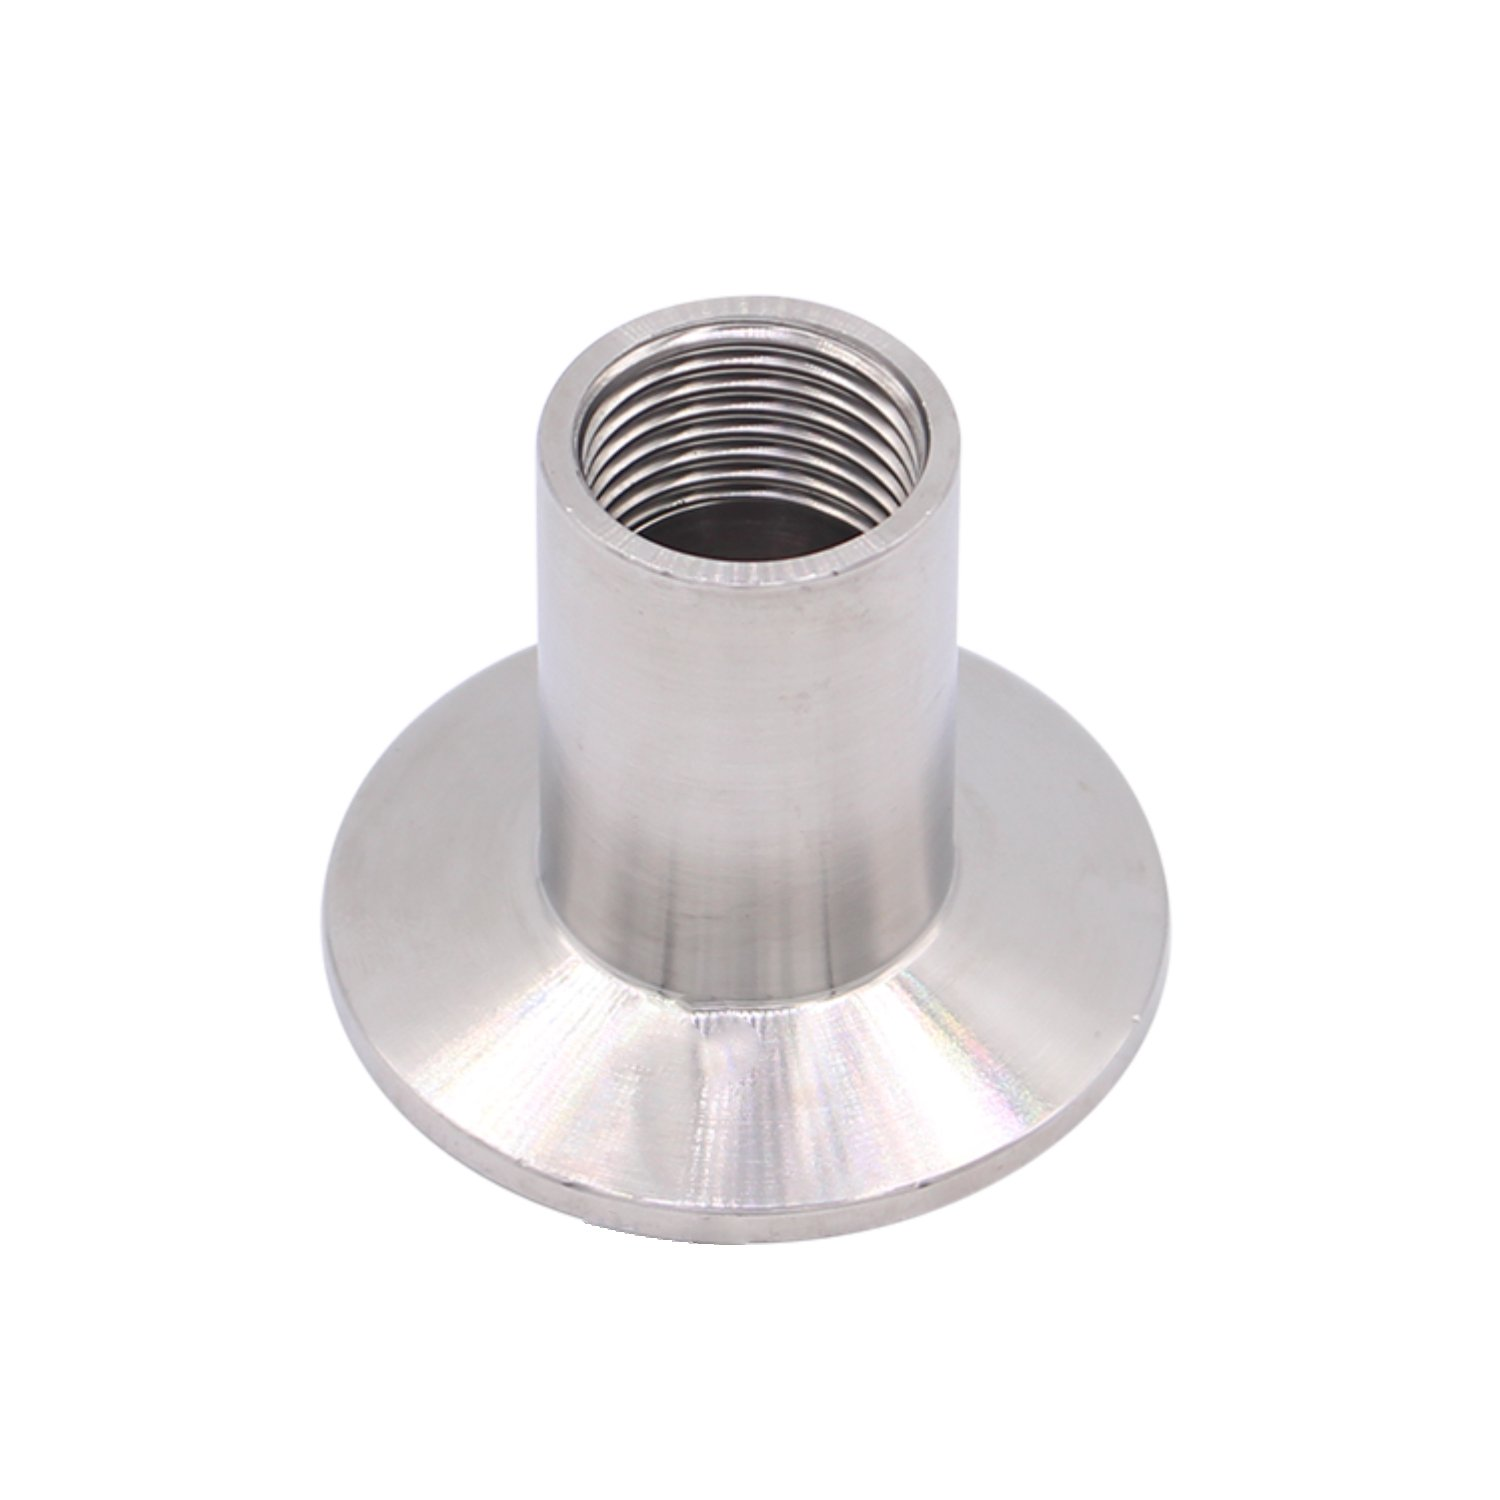 DERNORD Sanitary Fitting Reducer Fitting SUS304 Tri Clamp Ferrule Style 3 Tube OD to 1-1//2 Tube OD